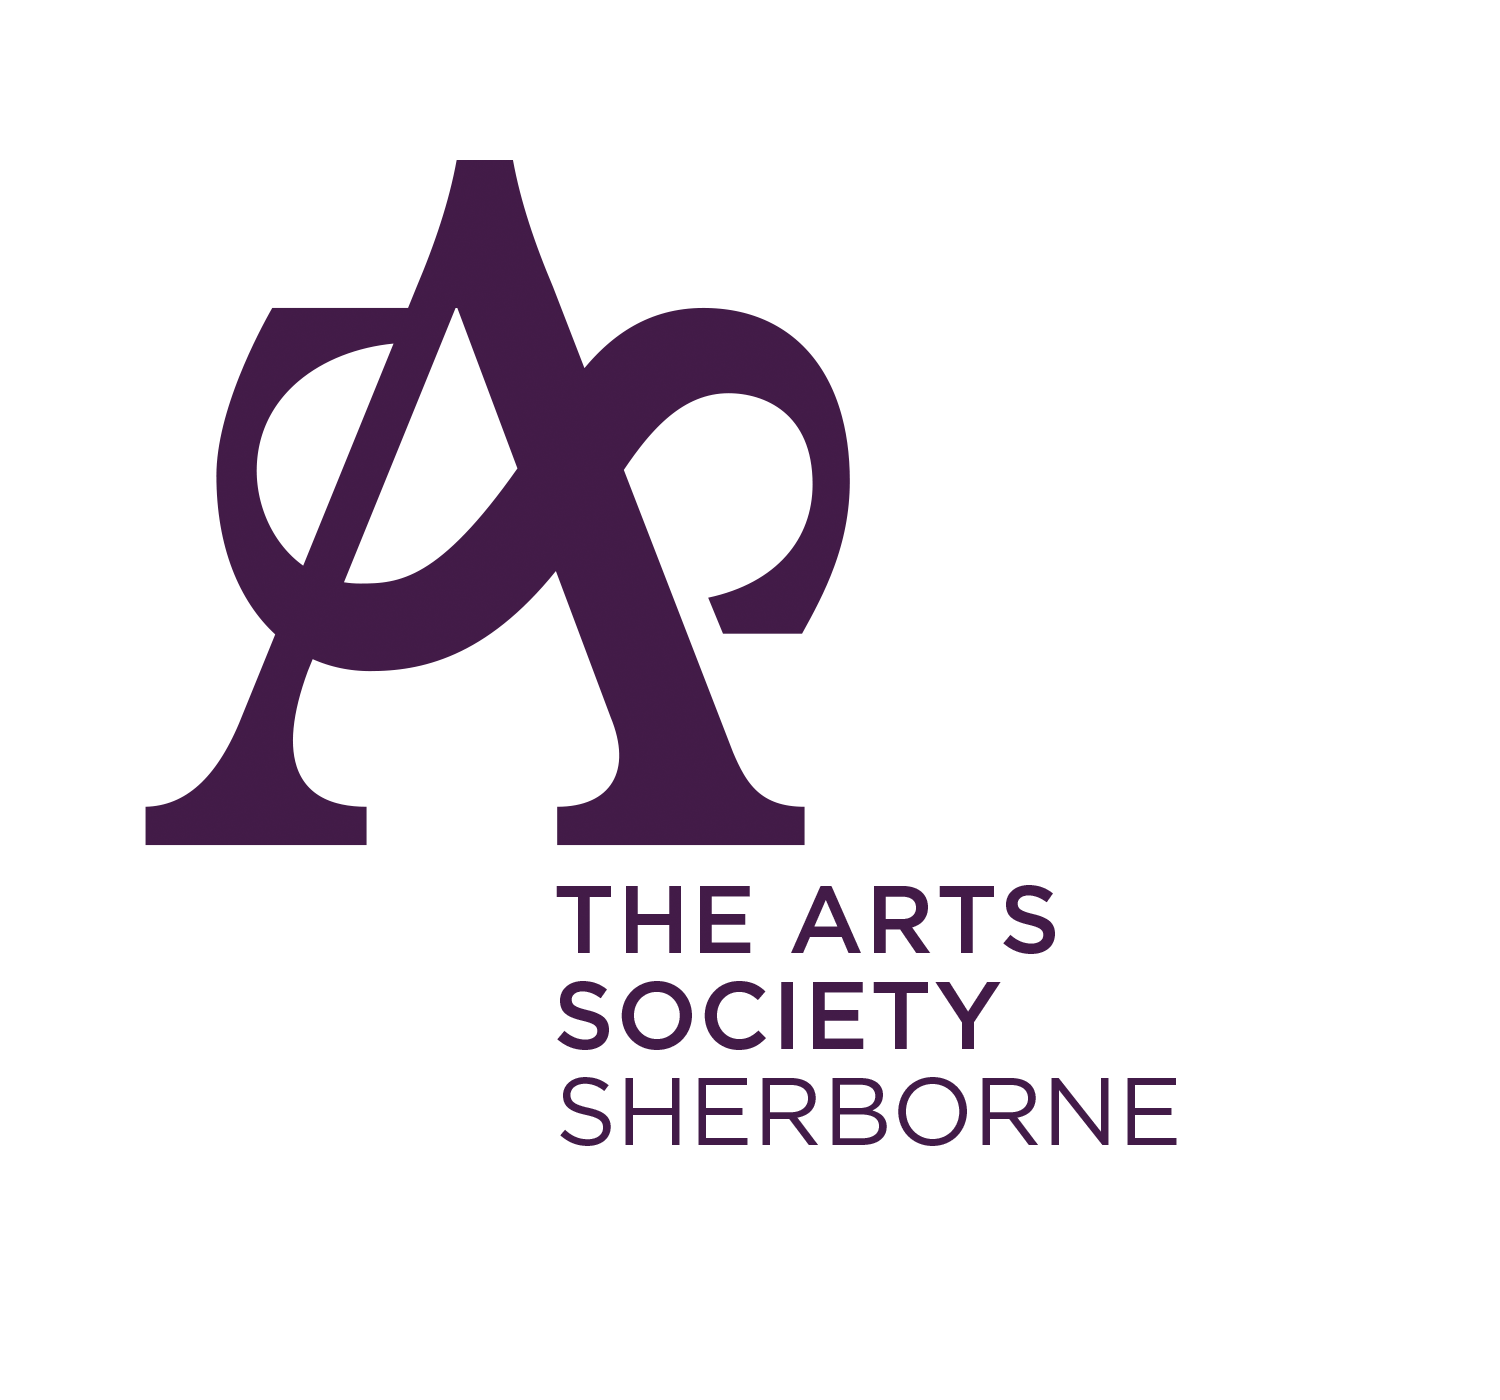 The Arts Society Sherborne